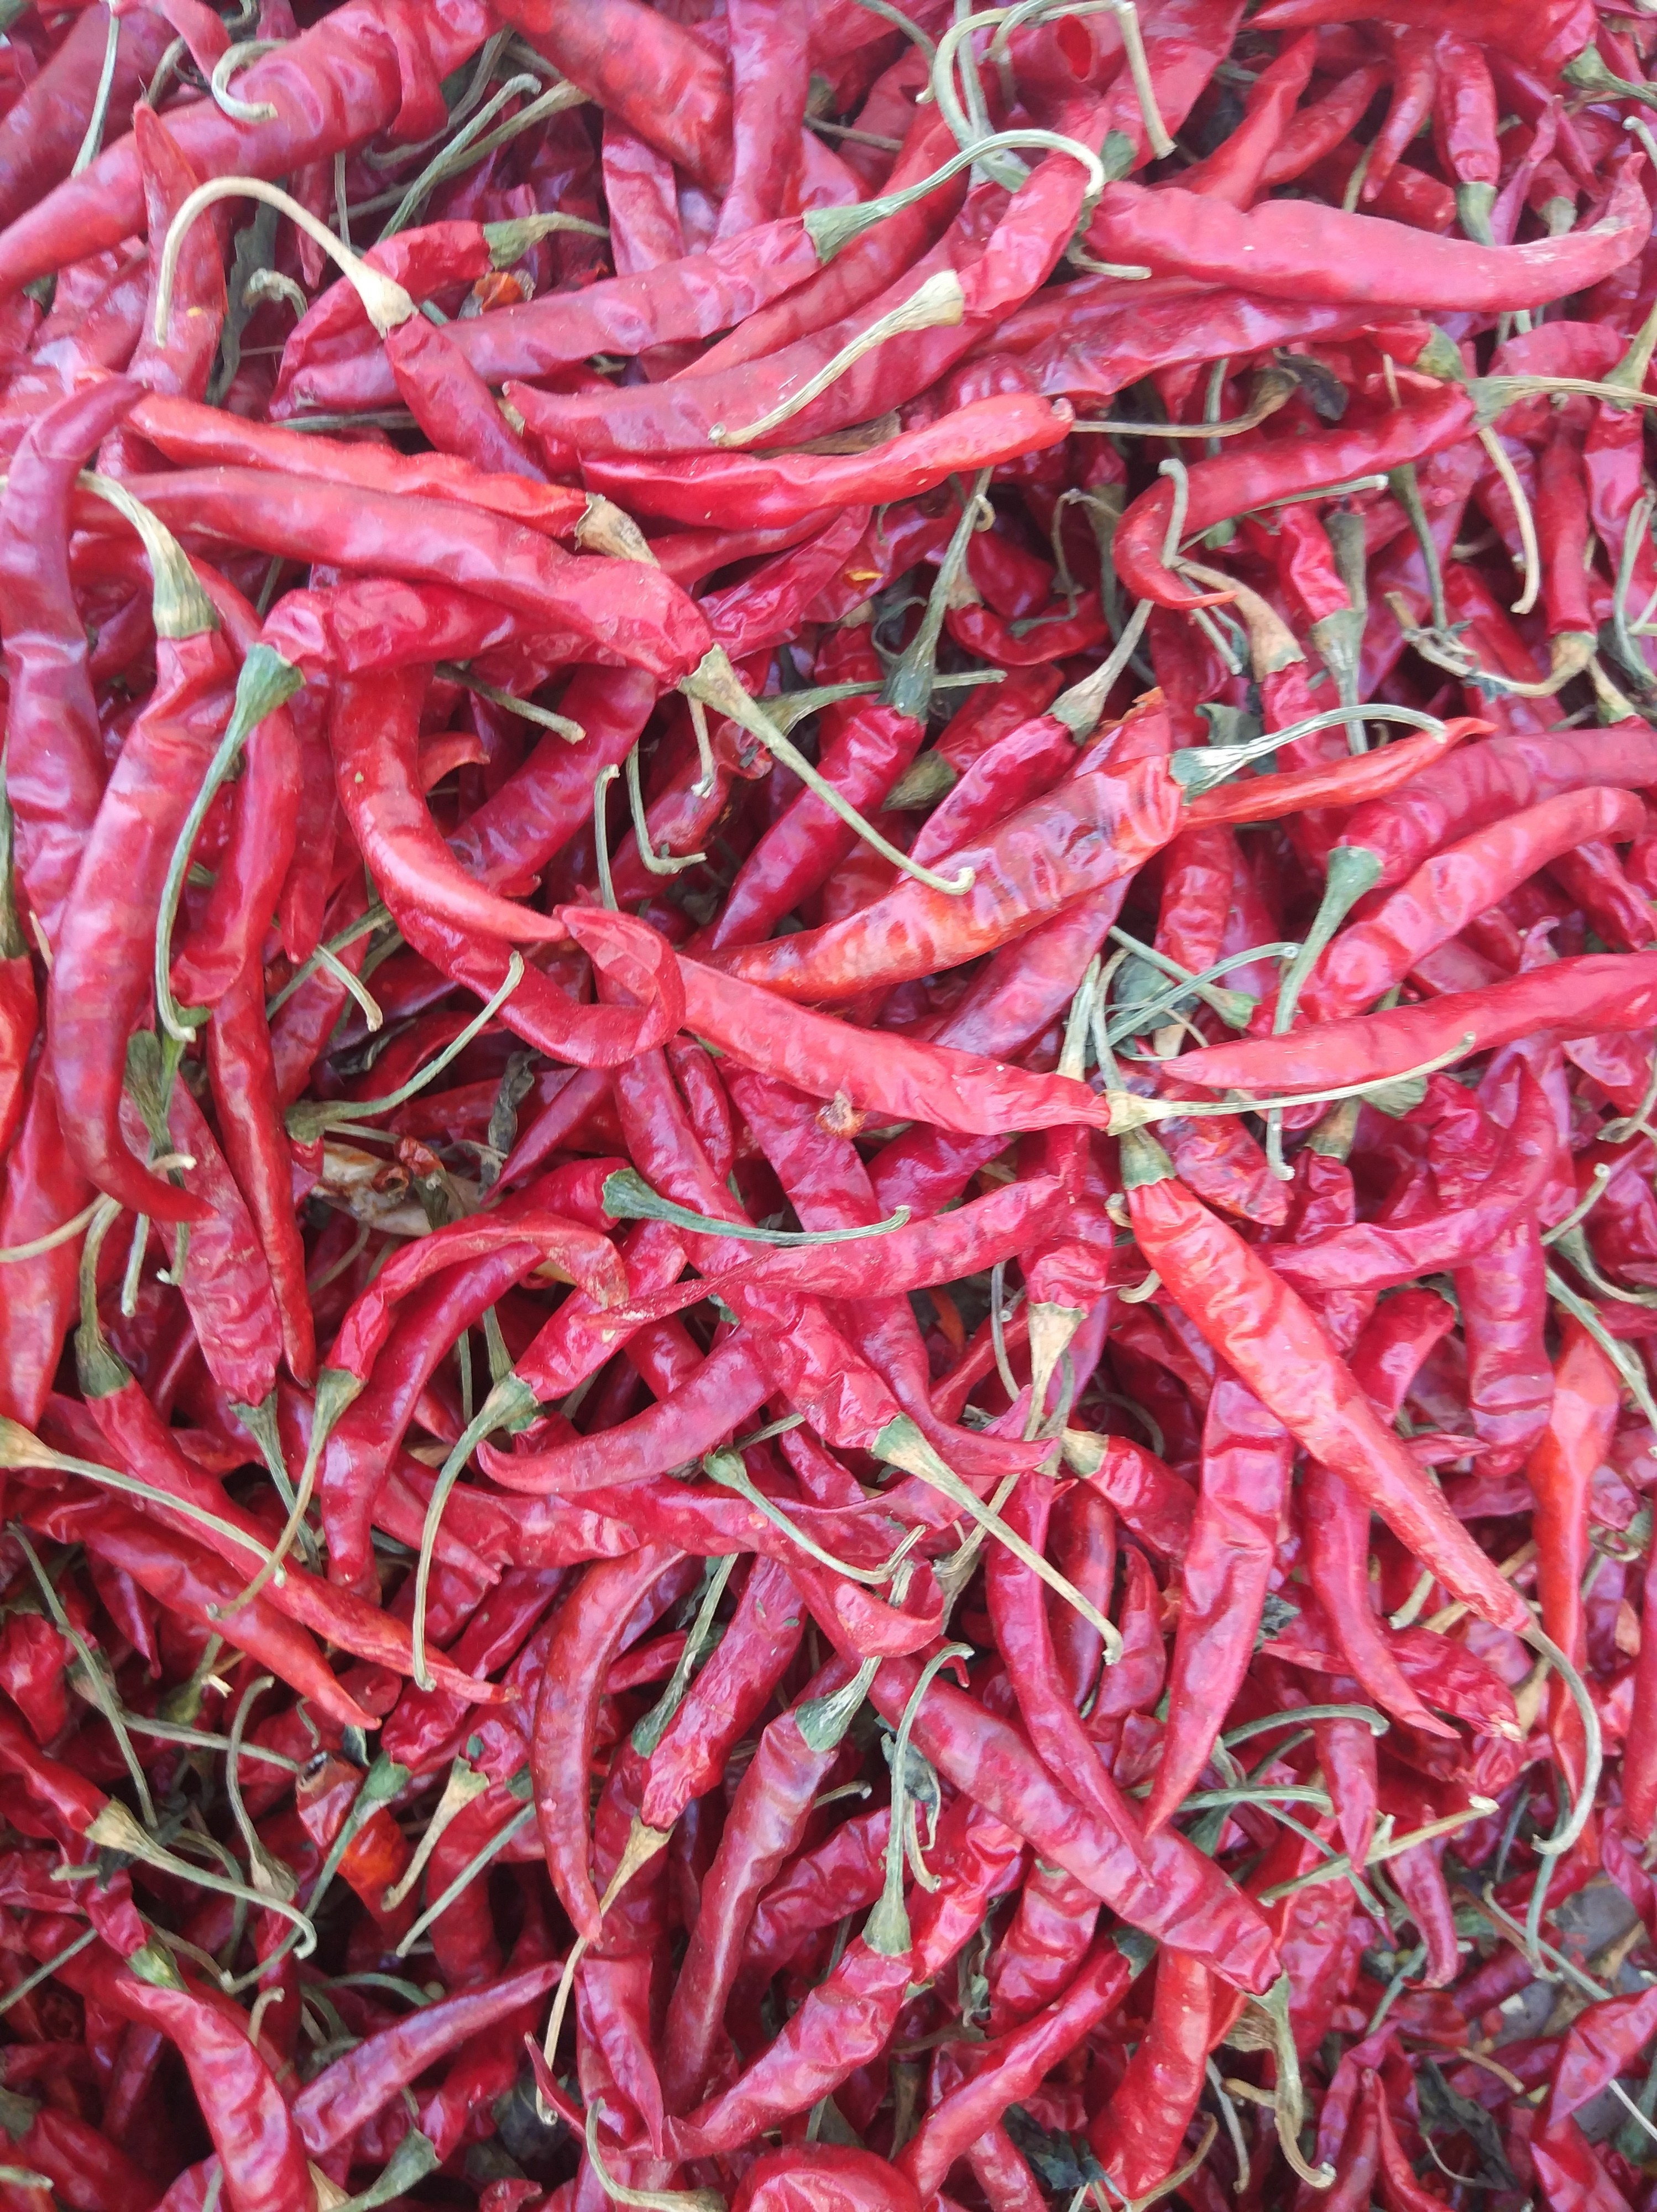 It is is long and has a thin skin, and when it's dried has a crinkly appearance. It is known for its colour and pungency and is consumed across India. Long, fully wrinkled, less seed, dark red colour